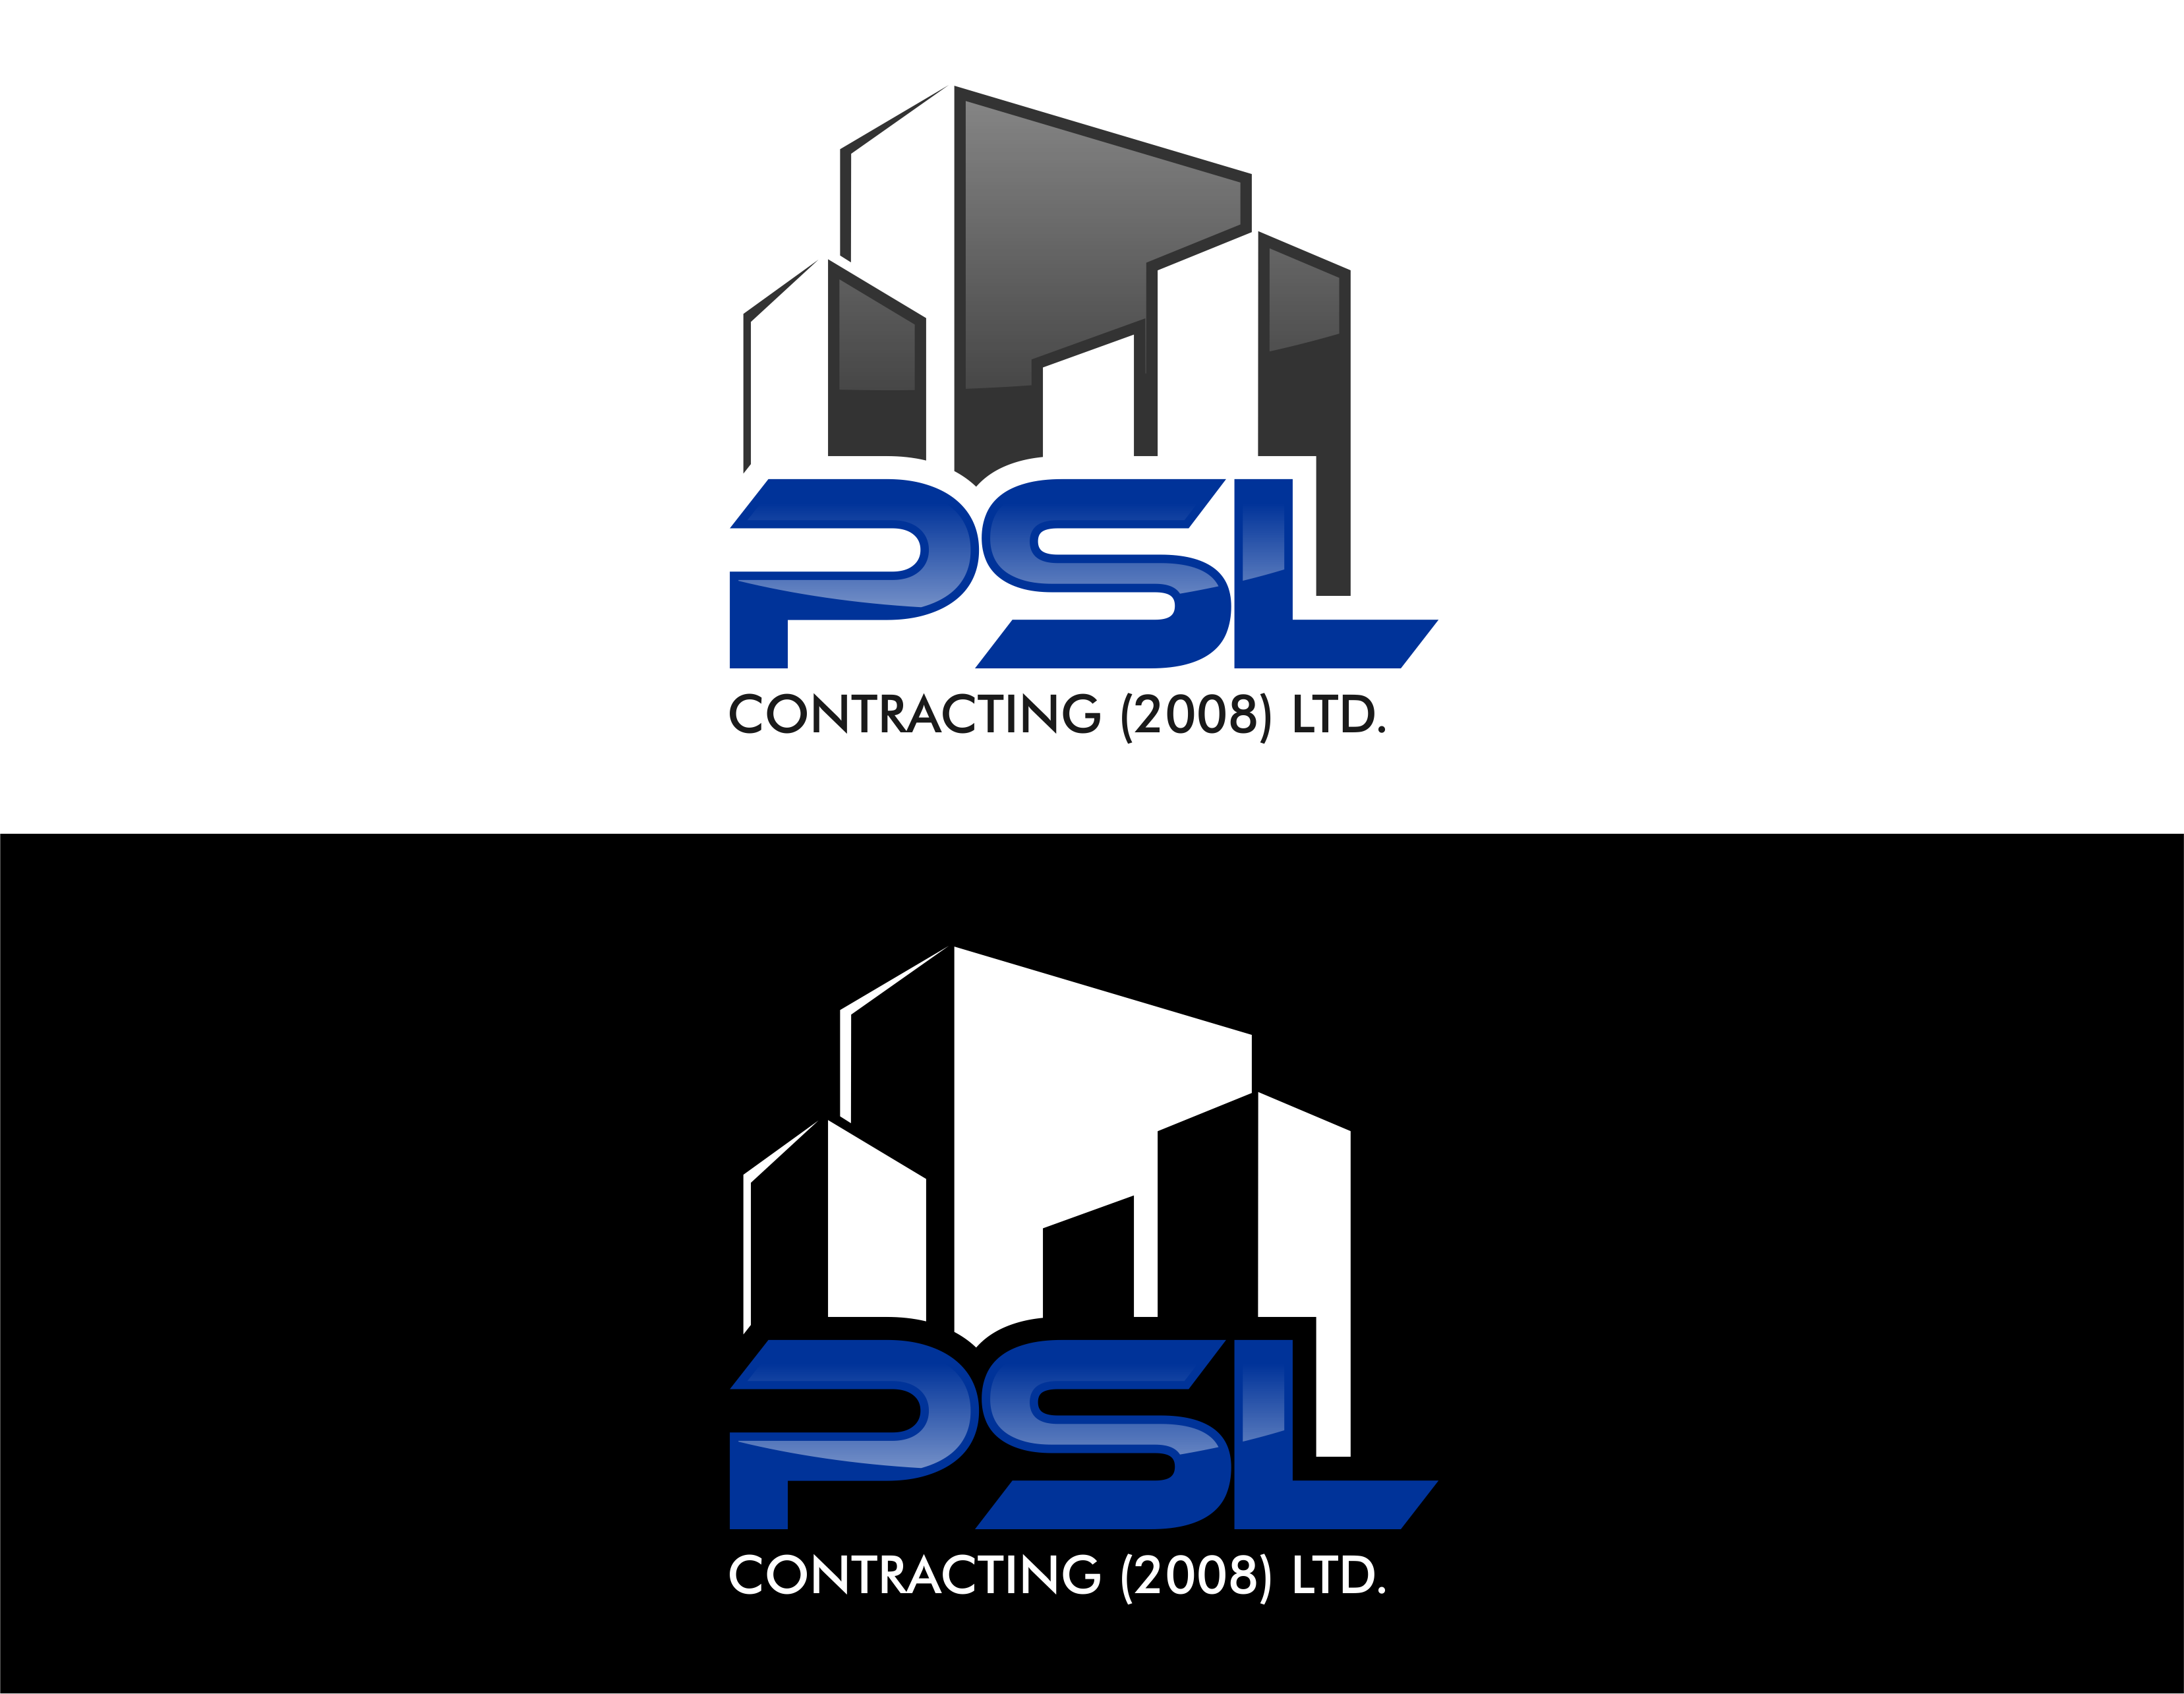 Logo Design by Private User - Entry No. 24 in the Logo Design Contest PSL Contracting (2008) Ltd. Logo Design.